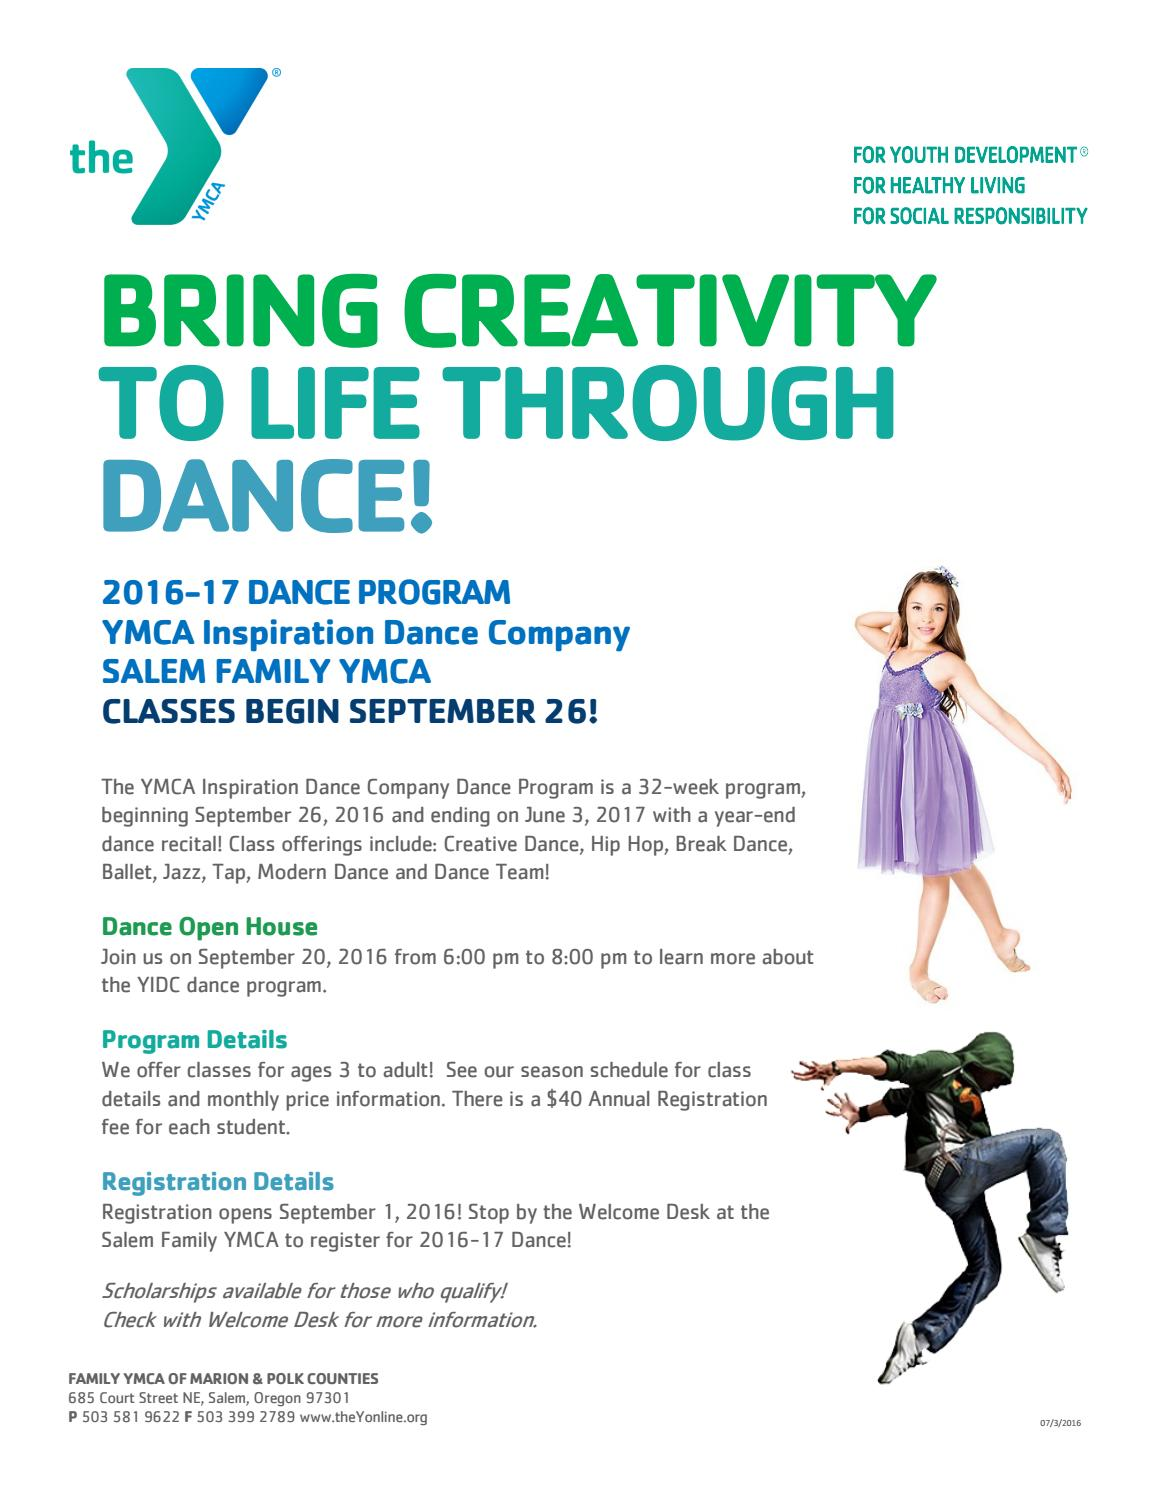 2016 17 Salem Family YMCA Dance Brochure By Family YMCA Of